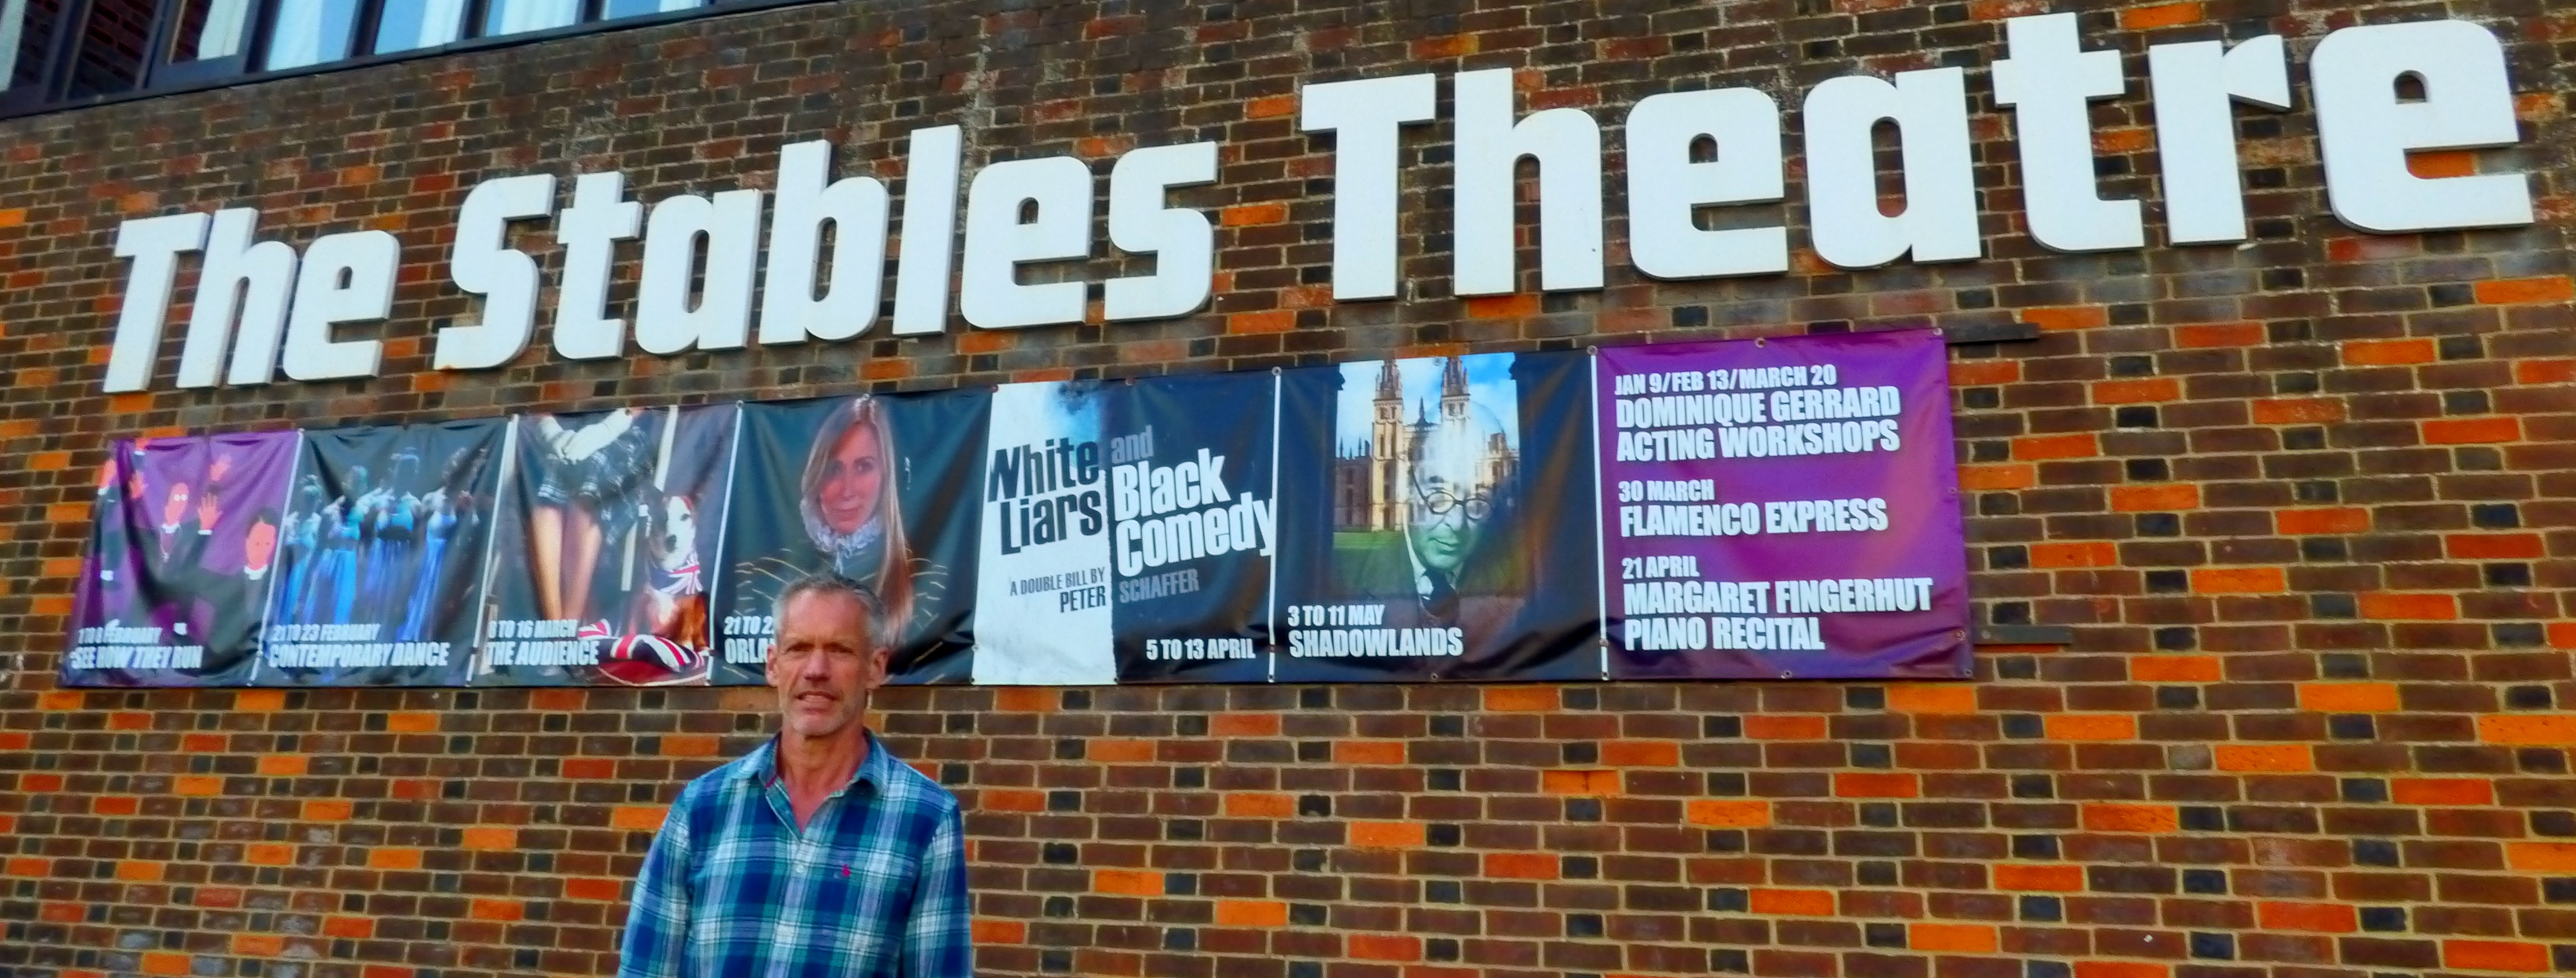 Making the theatre relevant – the new Stables Chairman gets to work